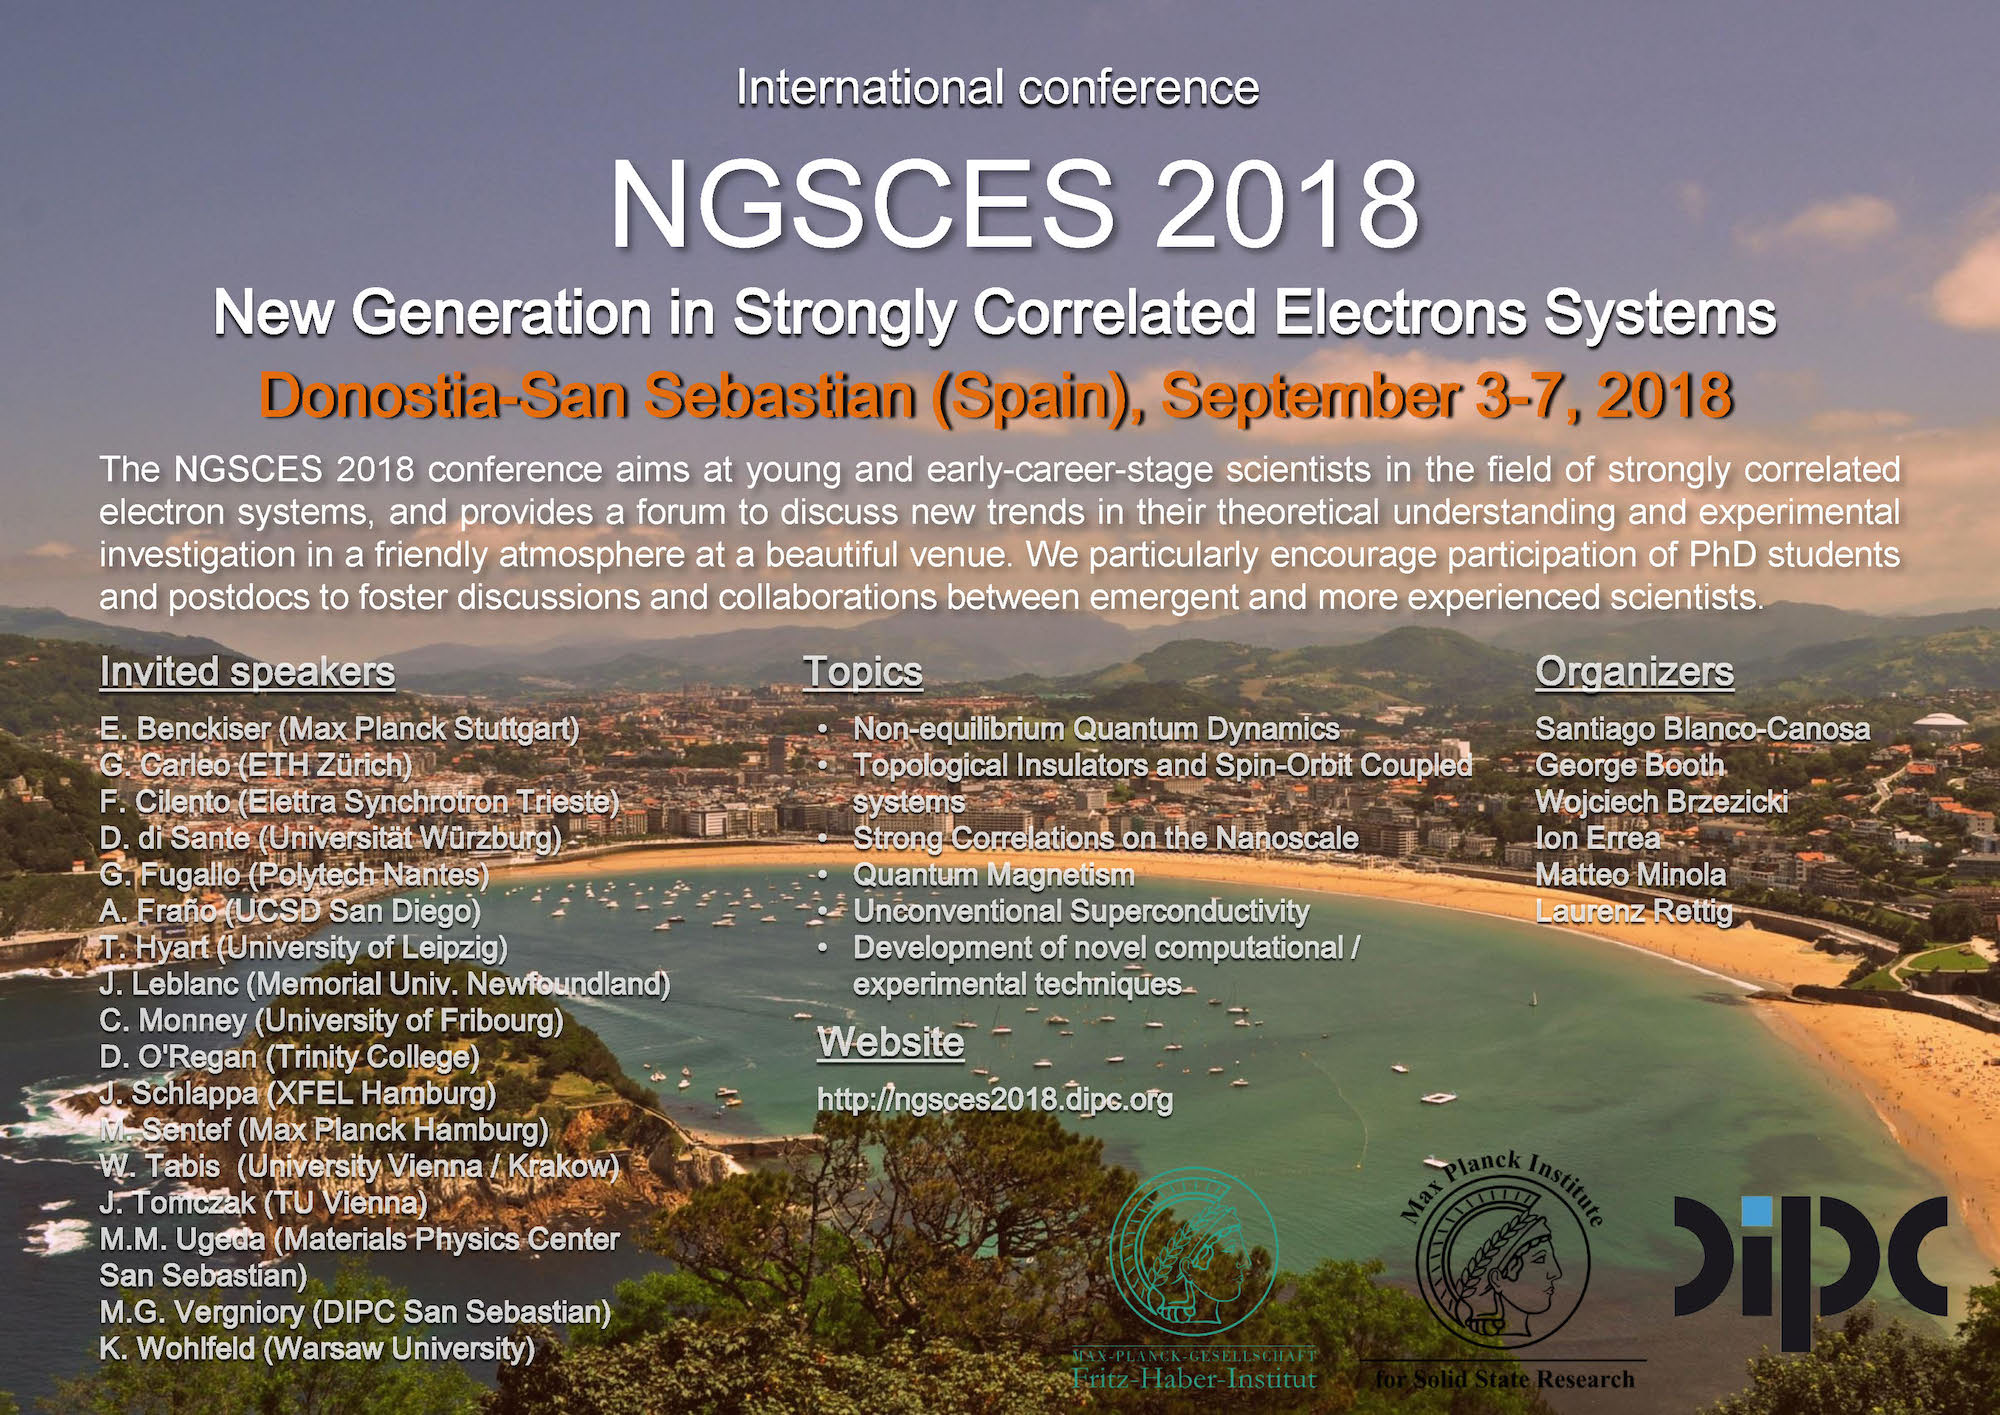 ngsces2018_poster.jpg